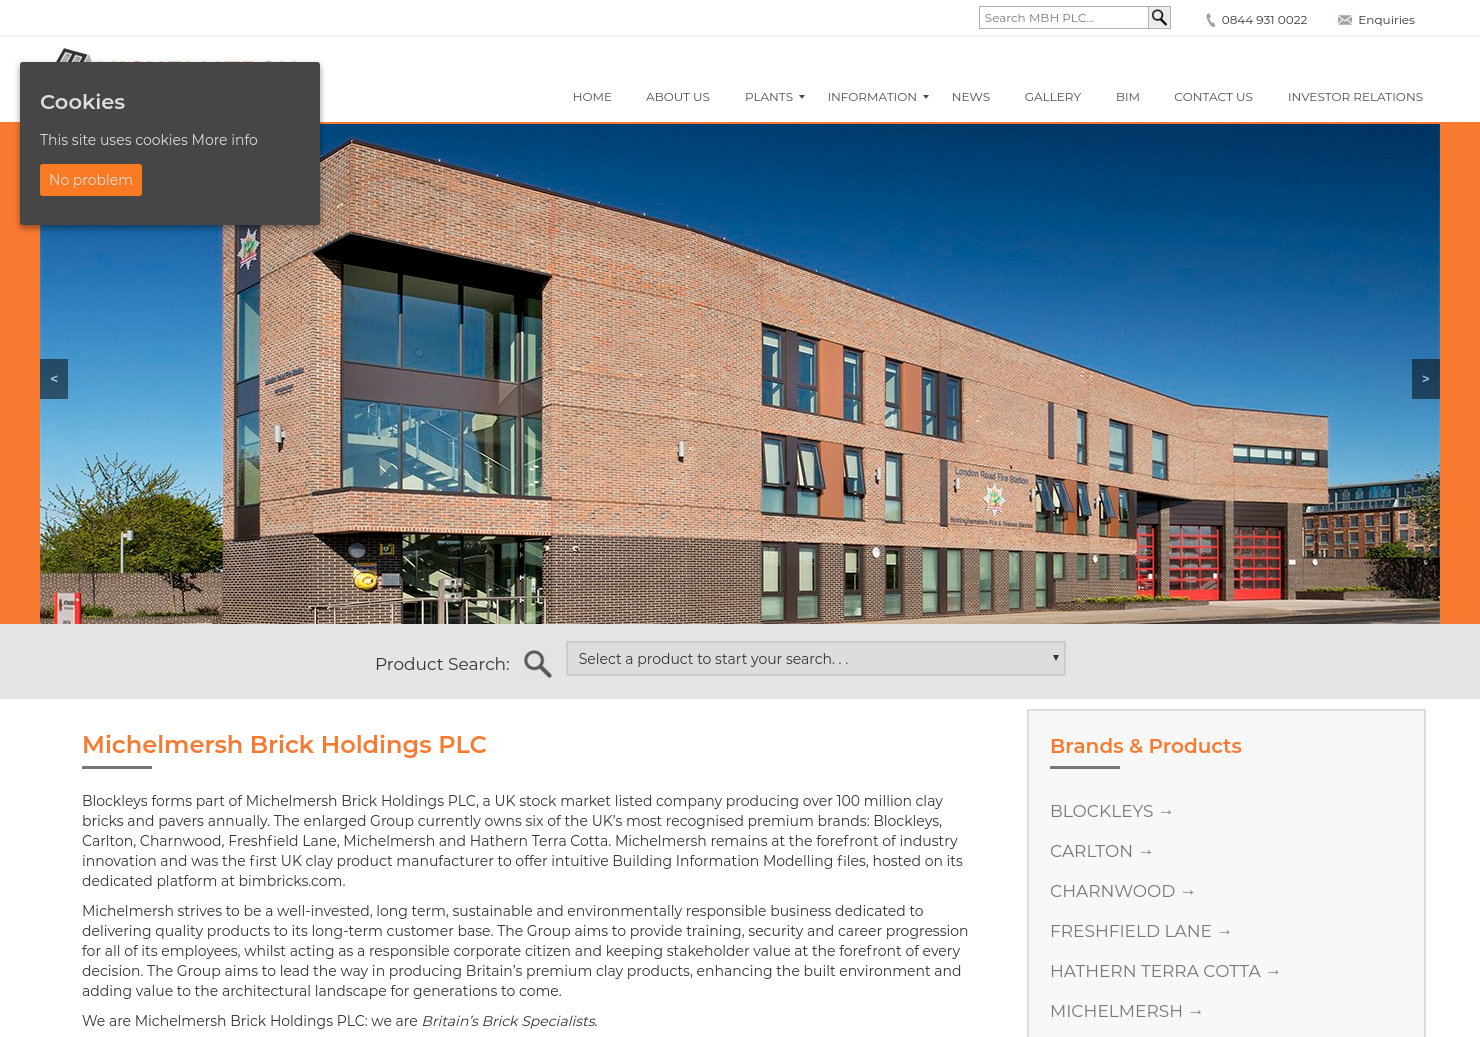 Michelmersh Brick Holdings Home Page